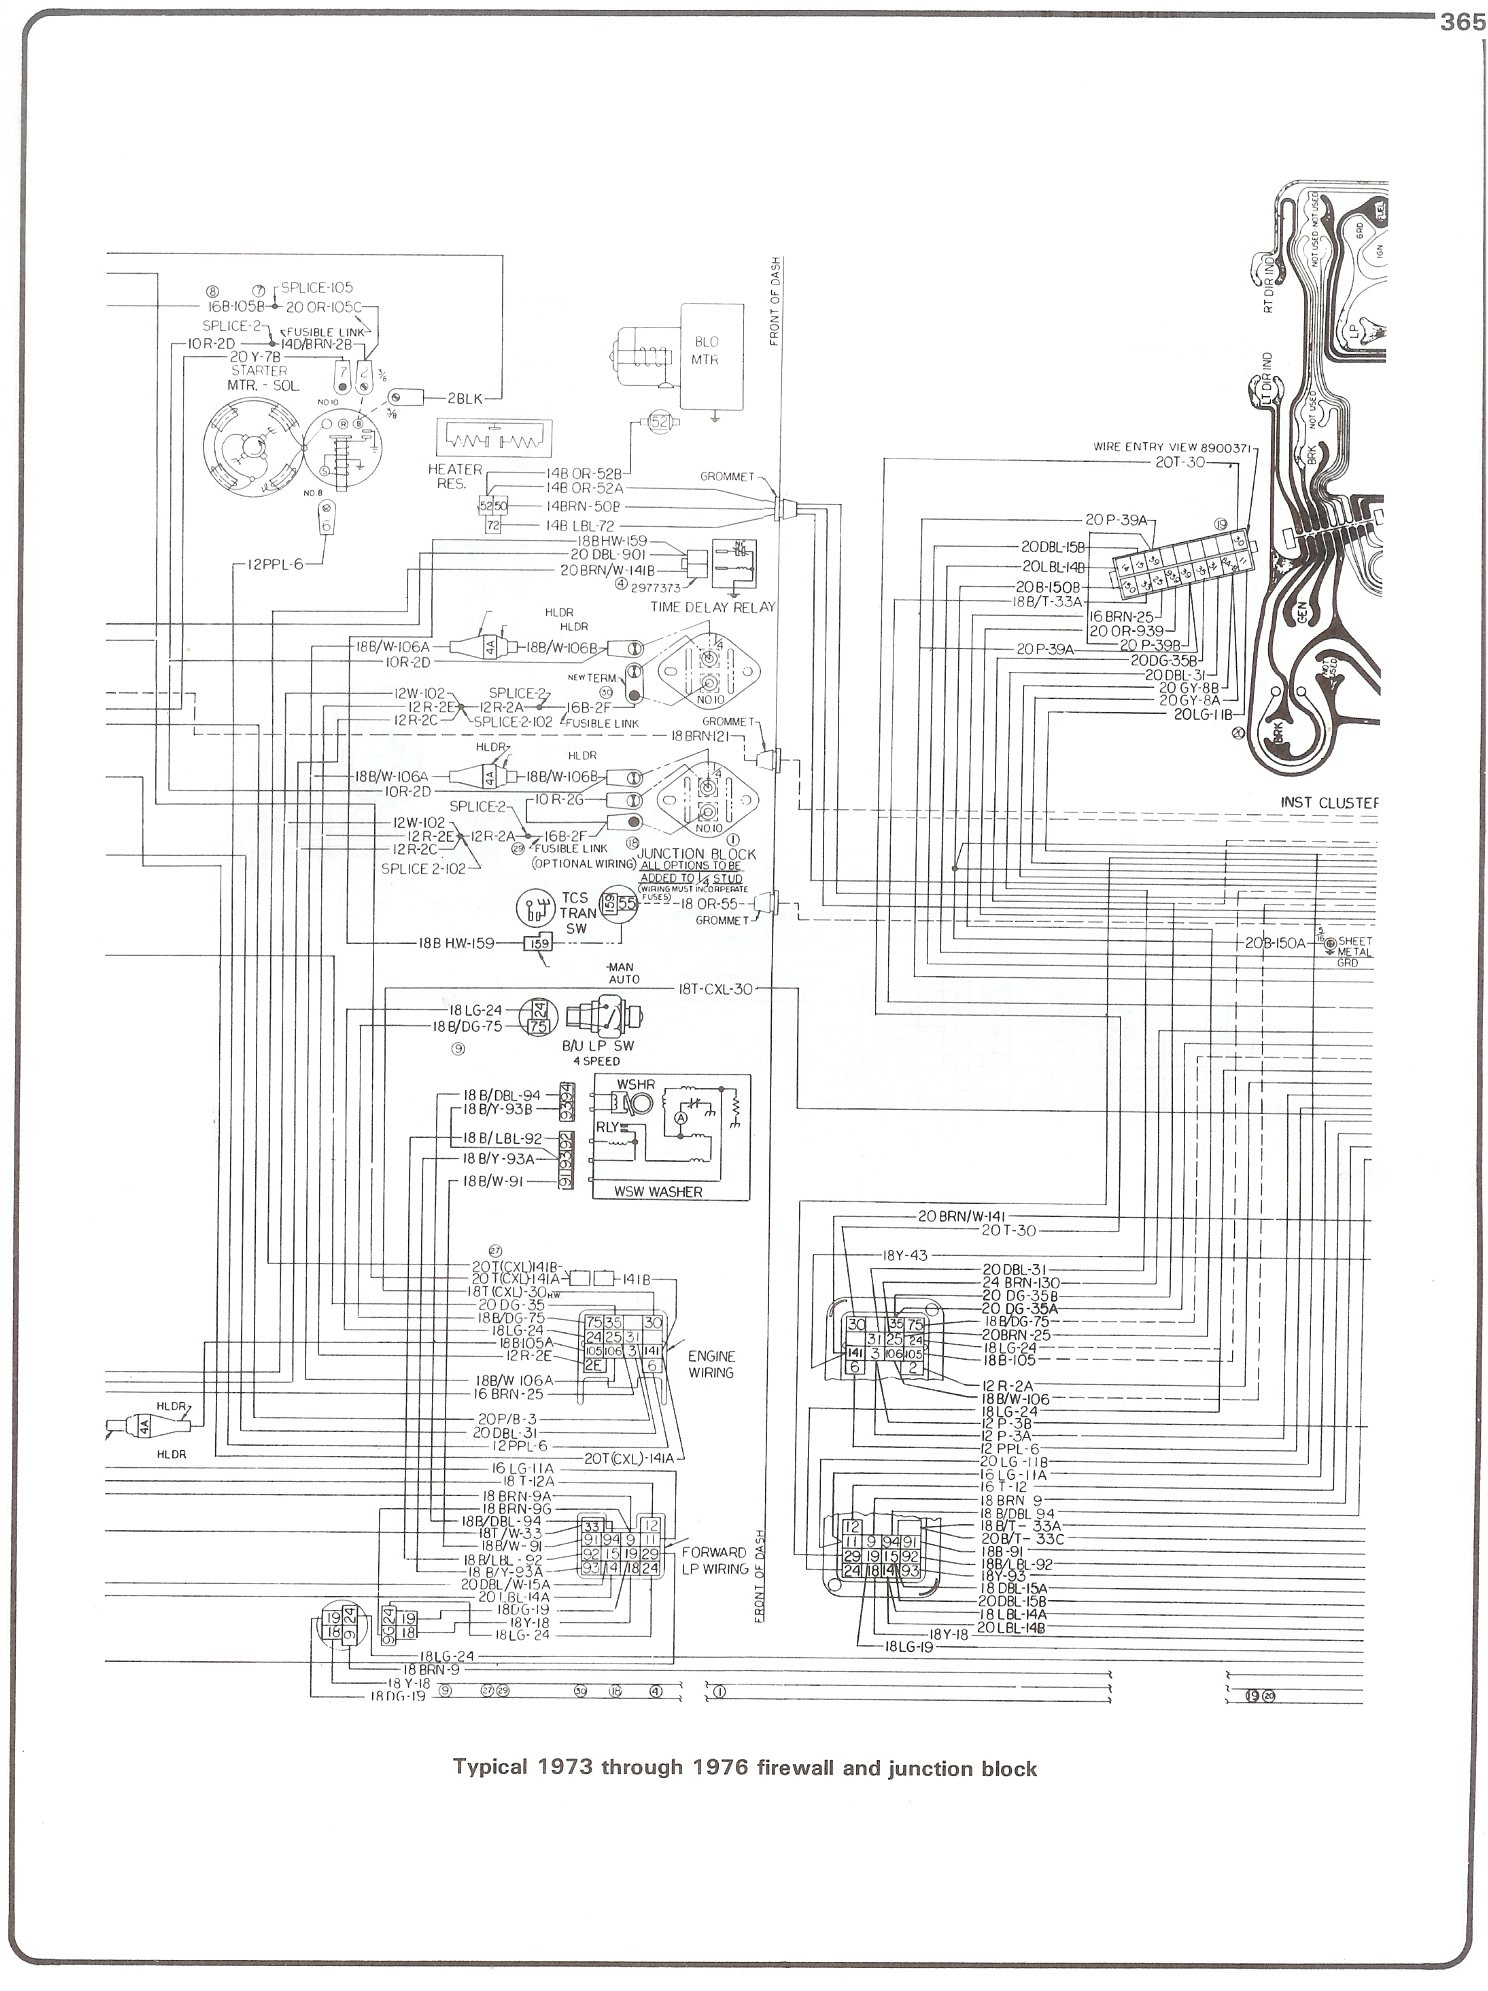 73 76_firewall_junct electrical diagrams chevy only page 2 truck forum 1983 chevy c10 fuse box diagram at creativeand.co